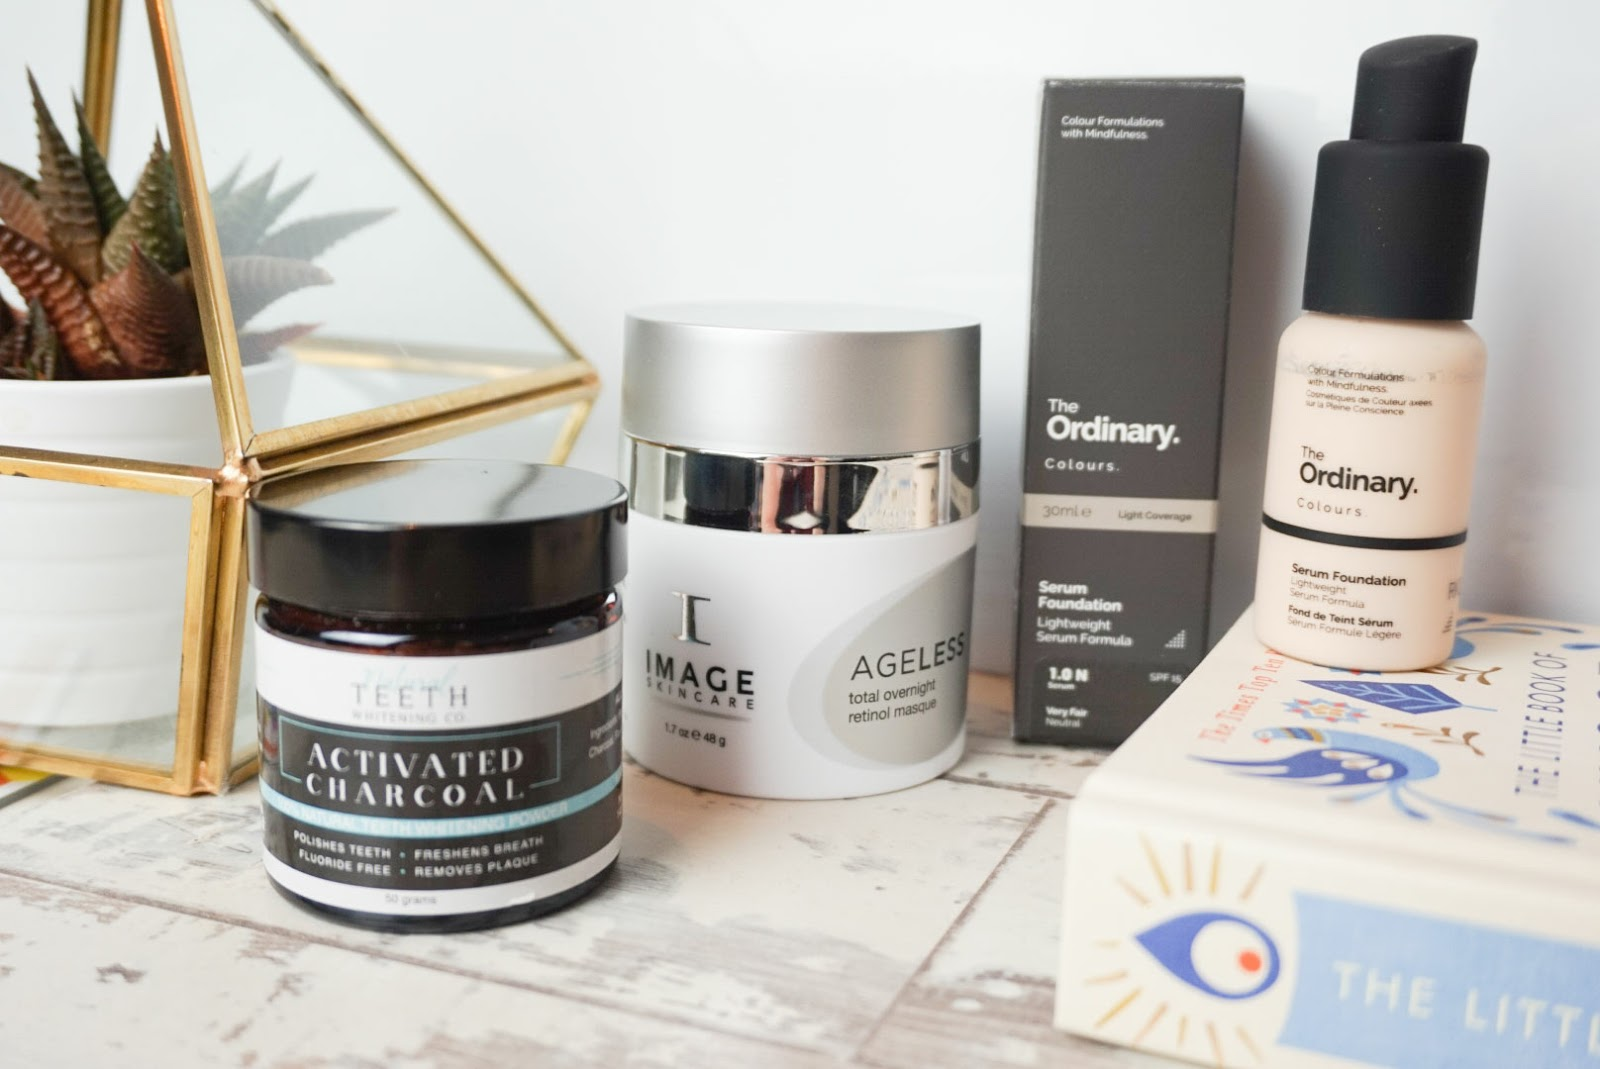 Image Skincare The Ordinary Foundation Charcoal Toothpaste